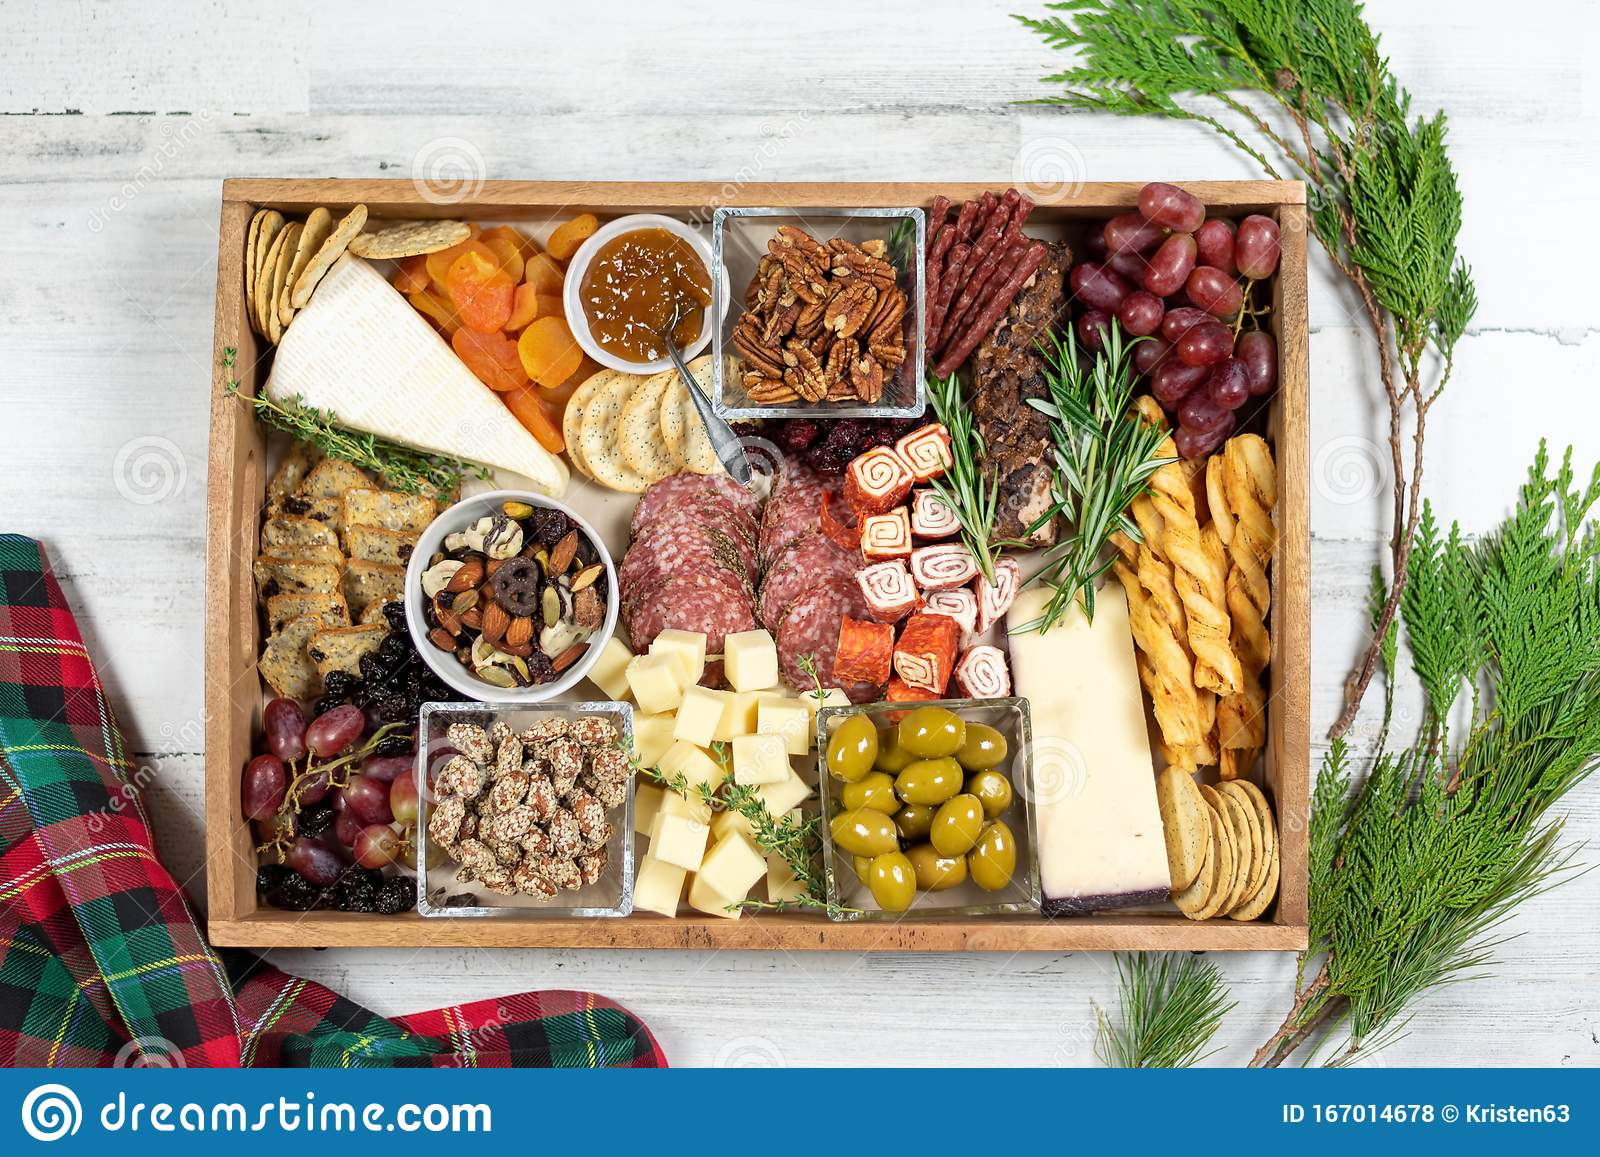 Holiday Appetizer Tray Of Meats And Cheeses Stock Photo Image Of Cold Drink 167014678